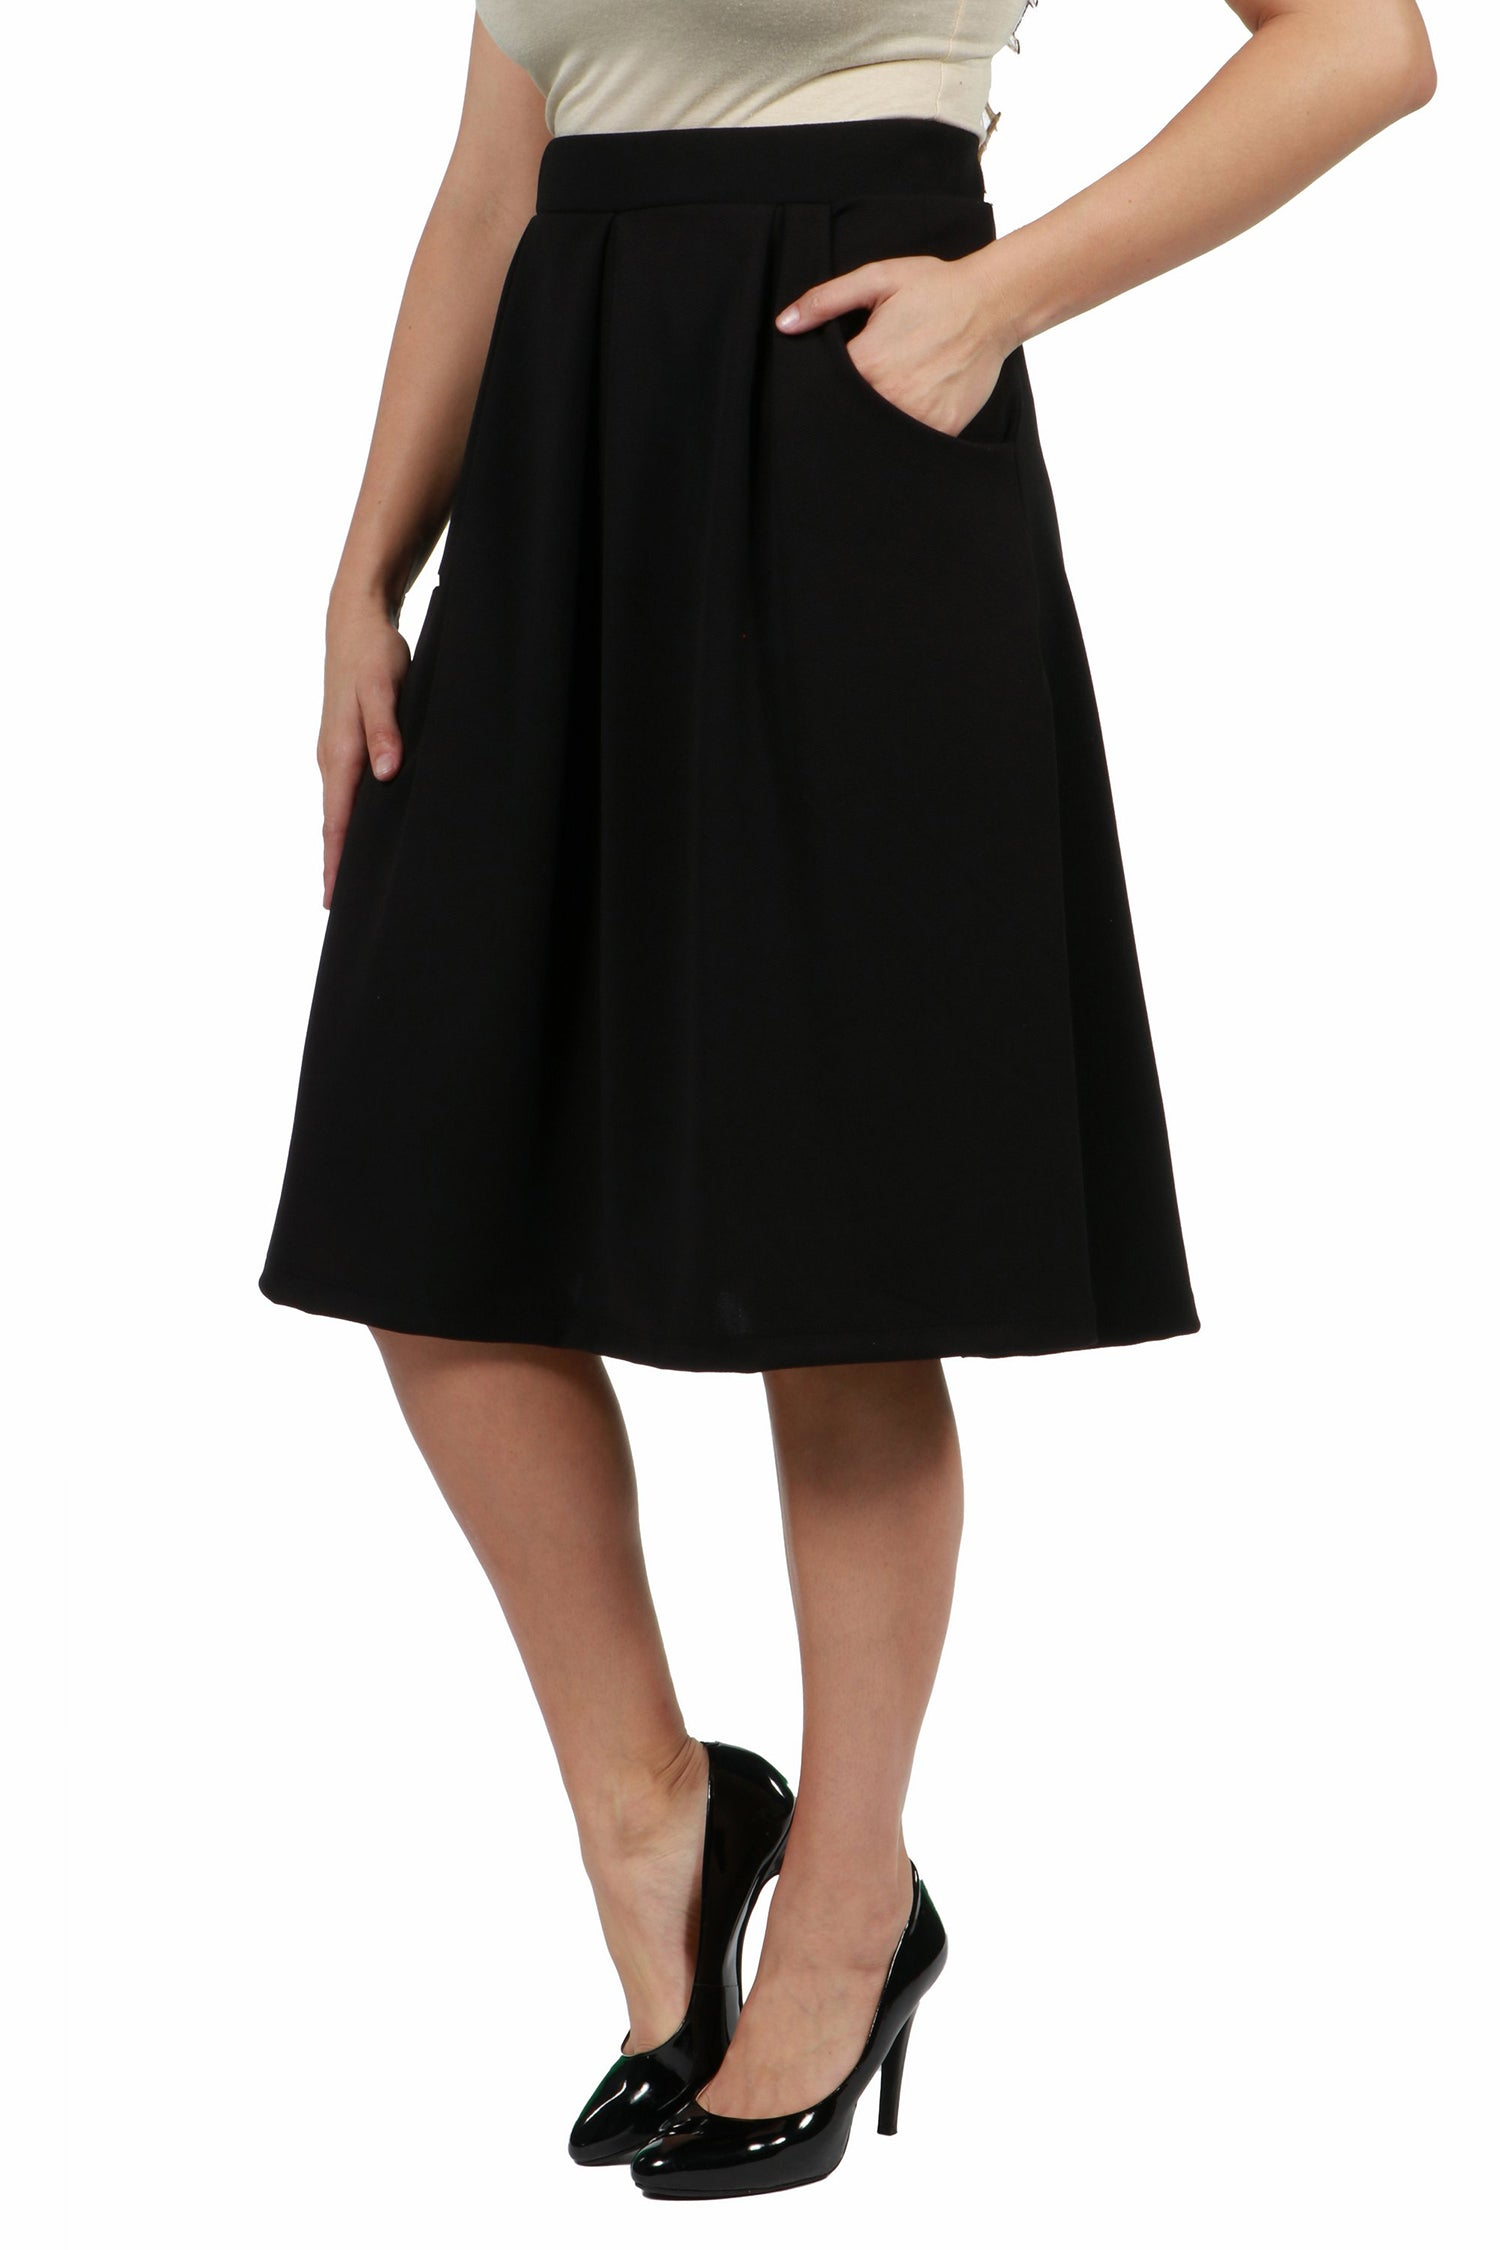 24seven Comfort Apparel Classic Plus Size Knee Length Black Skirt With Pockets-SKIRTS-24Seven Comfort Apparel-BLACK-1X-24/7 Comfort Apparel